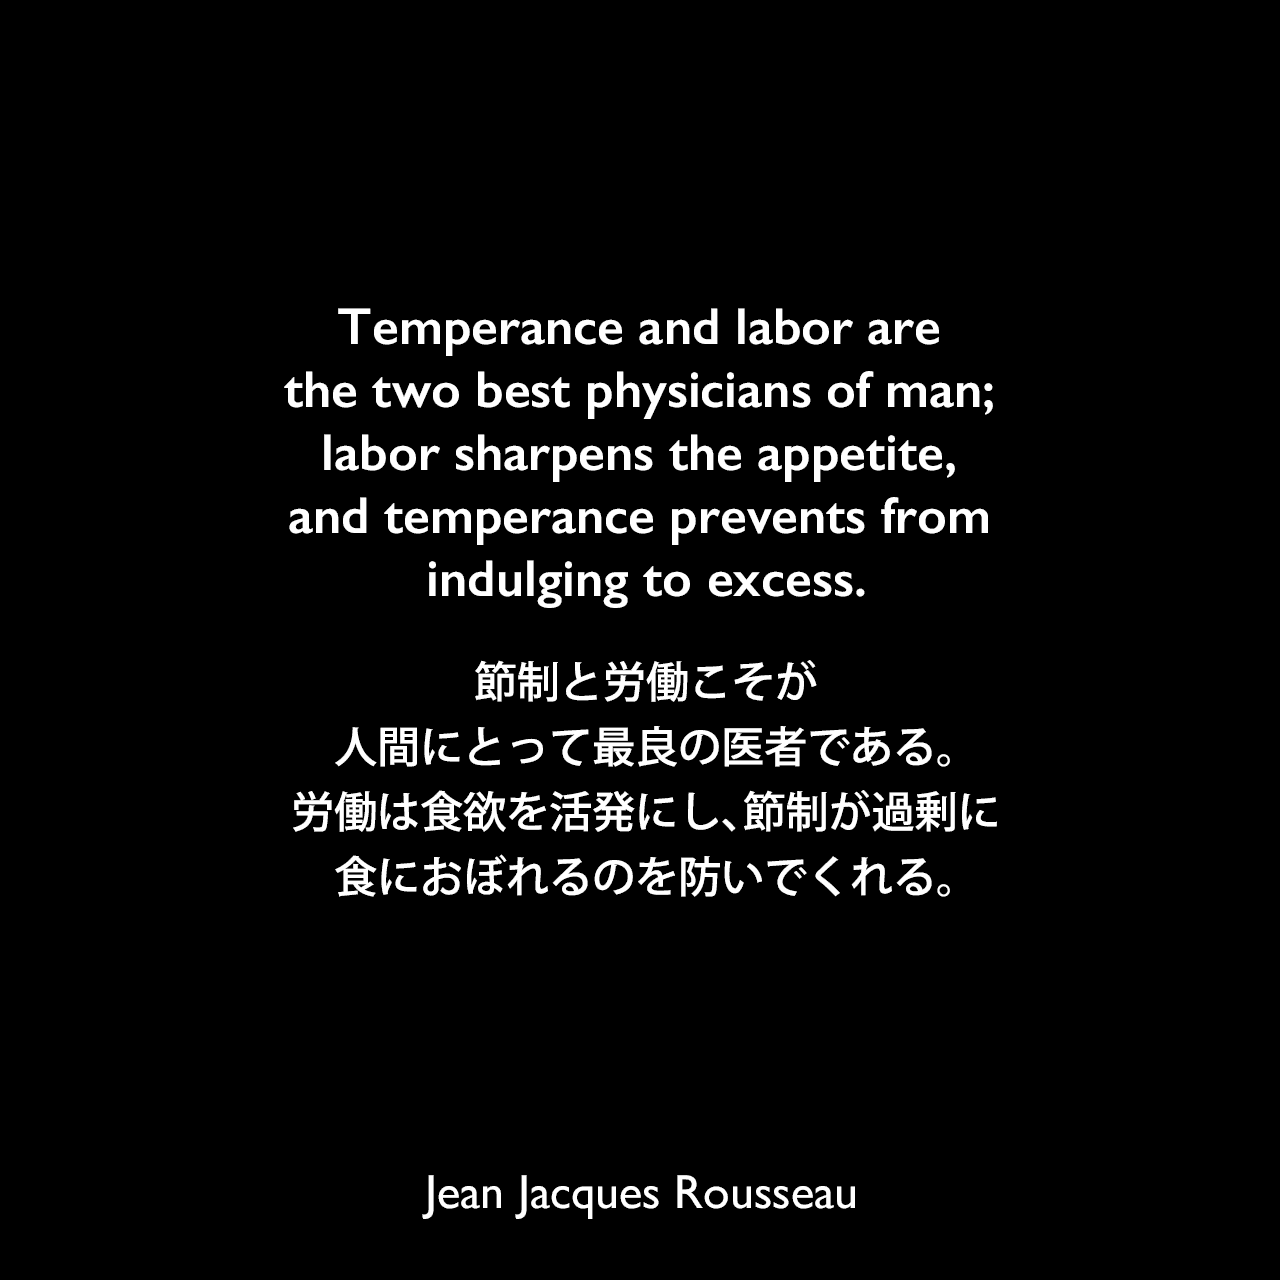 Temperance and labor are the two best physicians of man; labor sharpens the appetite, and temperance prevents from indulging to excess.節制と労働こそが、人間にとって最良の医者である。労働は食欲を活発にし、節制が過剰に食におぼれるのを防いでくれる。Jean Jacques Rousseau